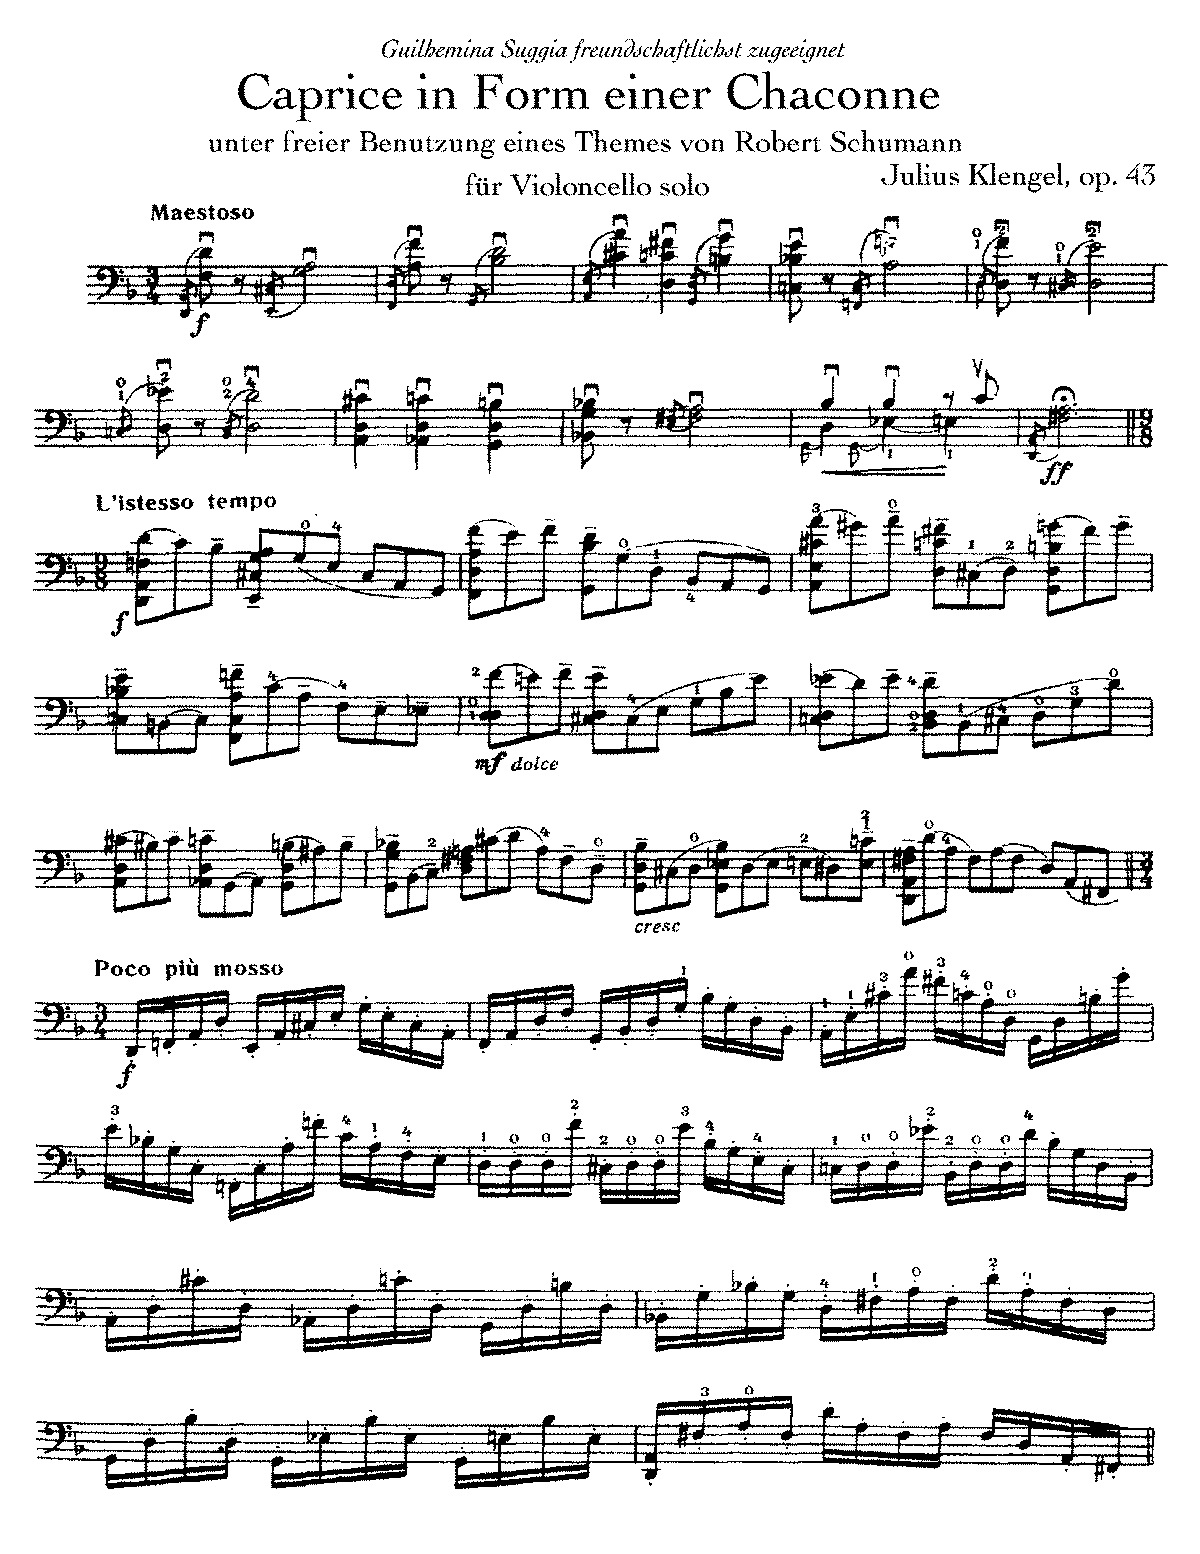 PMLP201510-Klengel - Caprice in Form einer Chaconne Op43 for cello (BaH).pdf